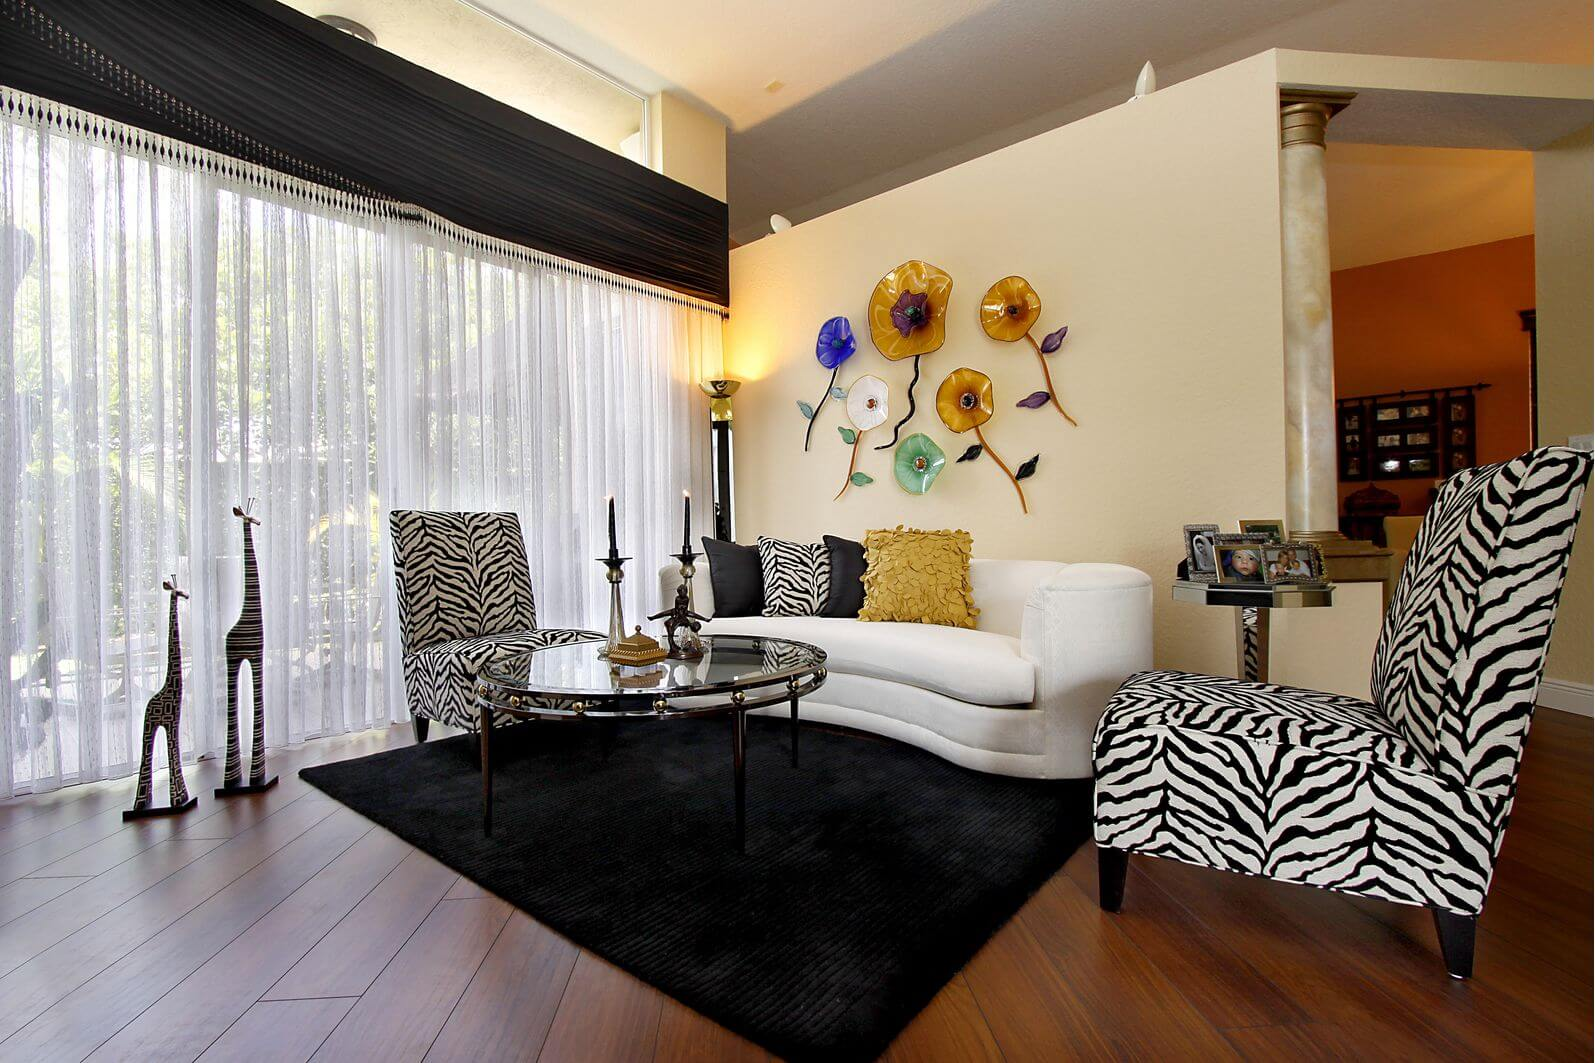 Exceptionnel Small Living Room With 2 Zebra Print Armless Chairs, One Small White Sofa,  Glass